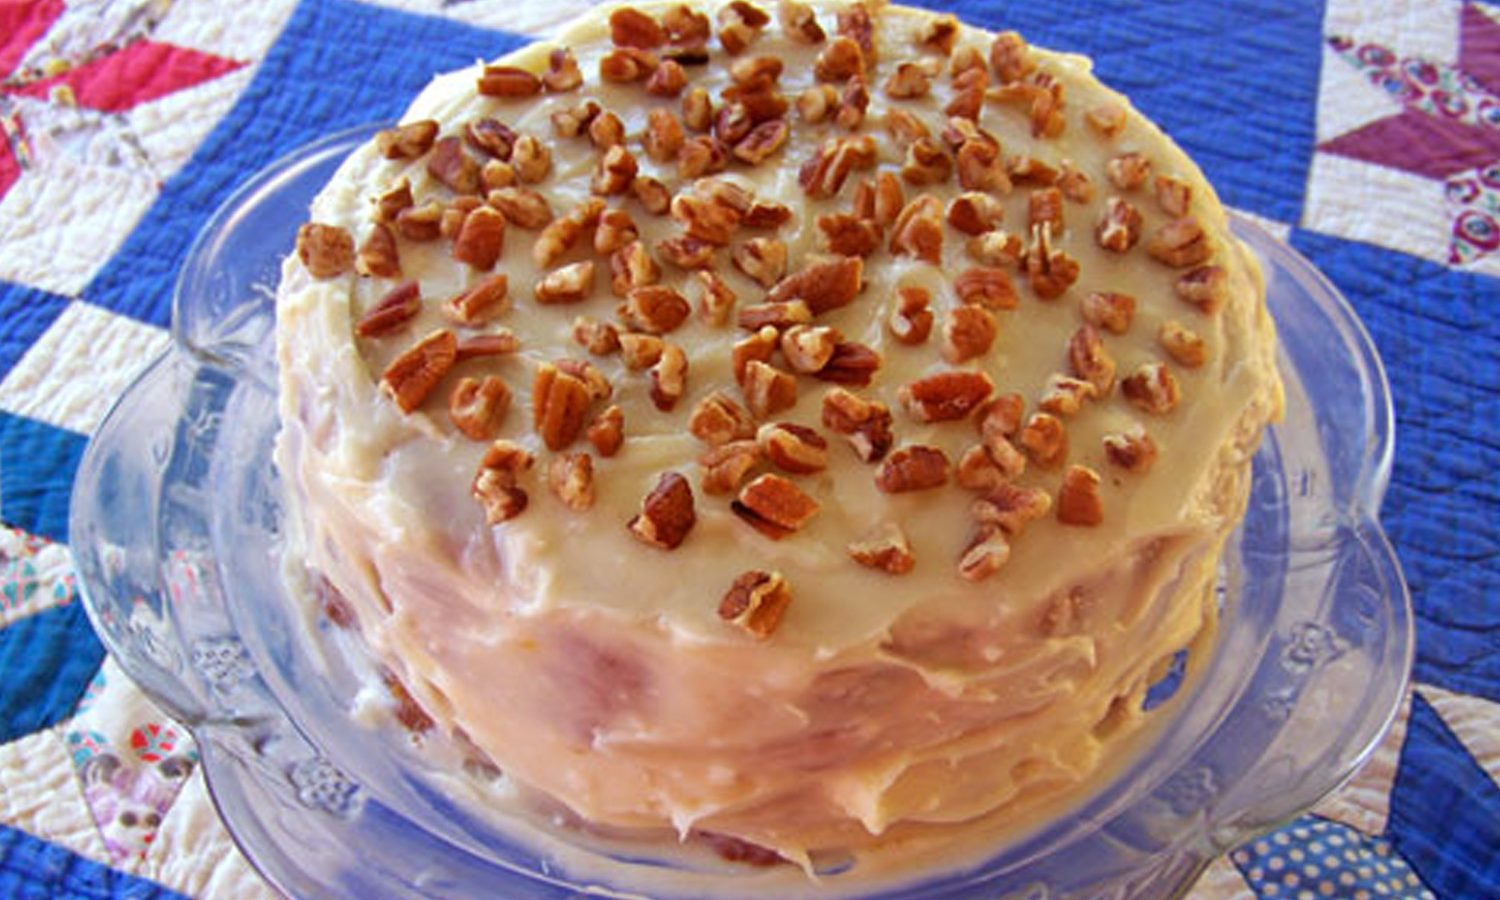 Pawpaw cake with frosting and nuts on top of a blue quilt